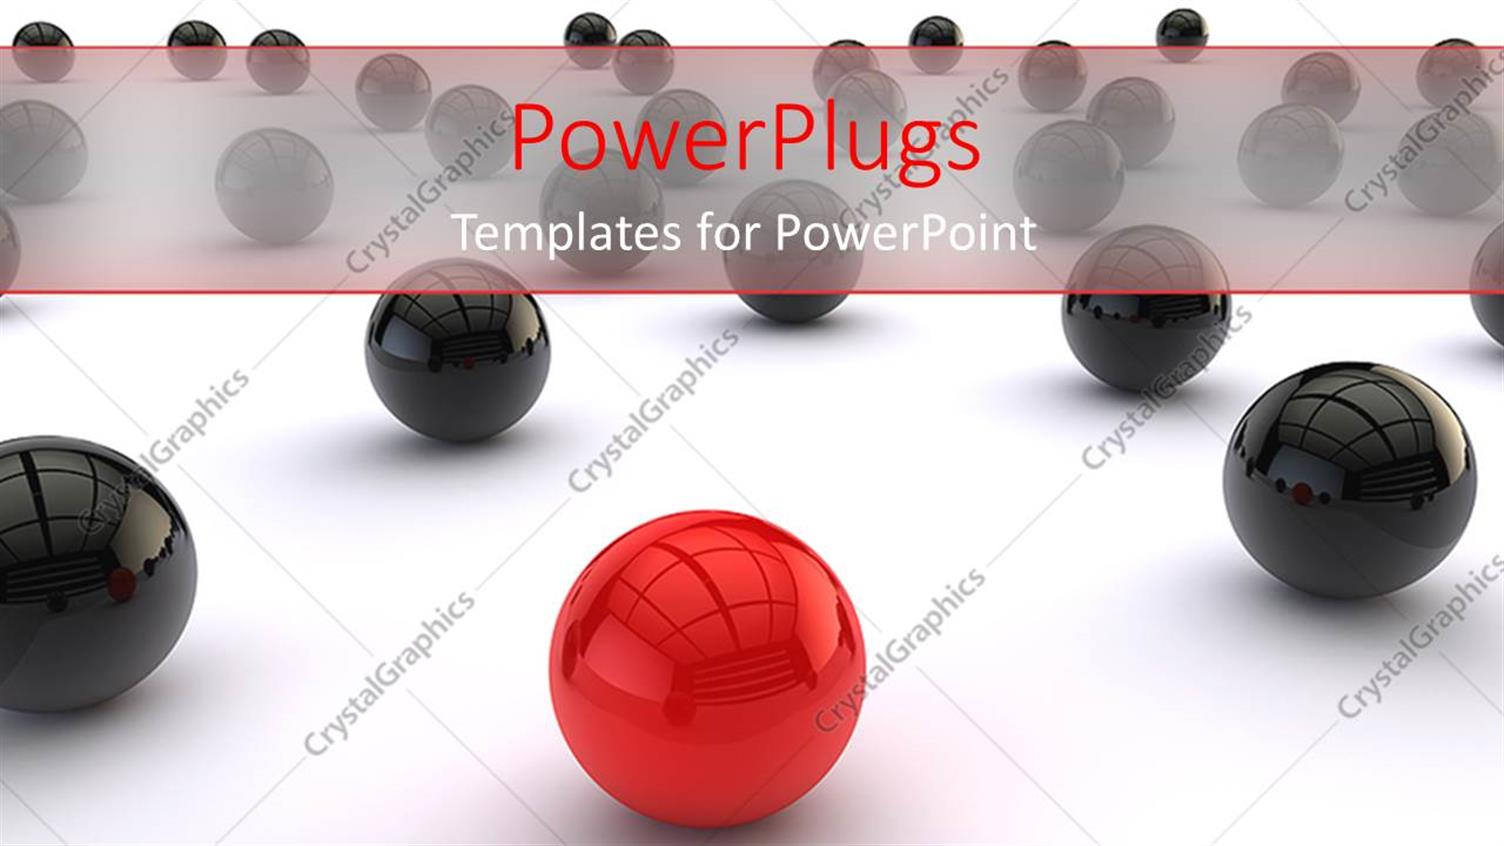 PowerPoint Template Displaying Distinct Red Ball among Black Balls on White Background